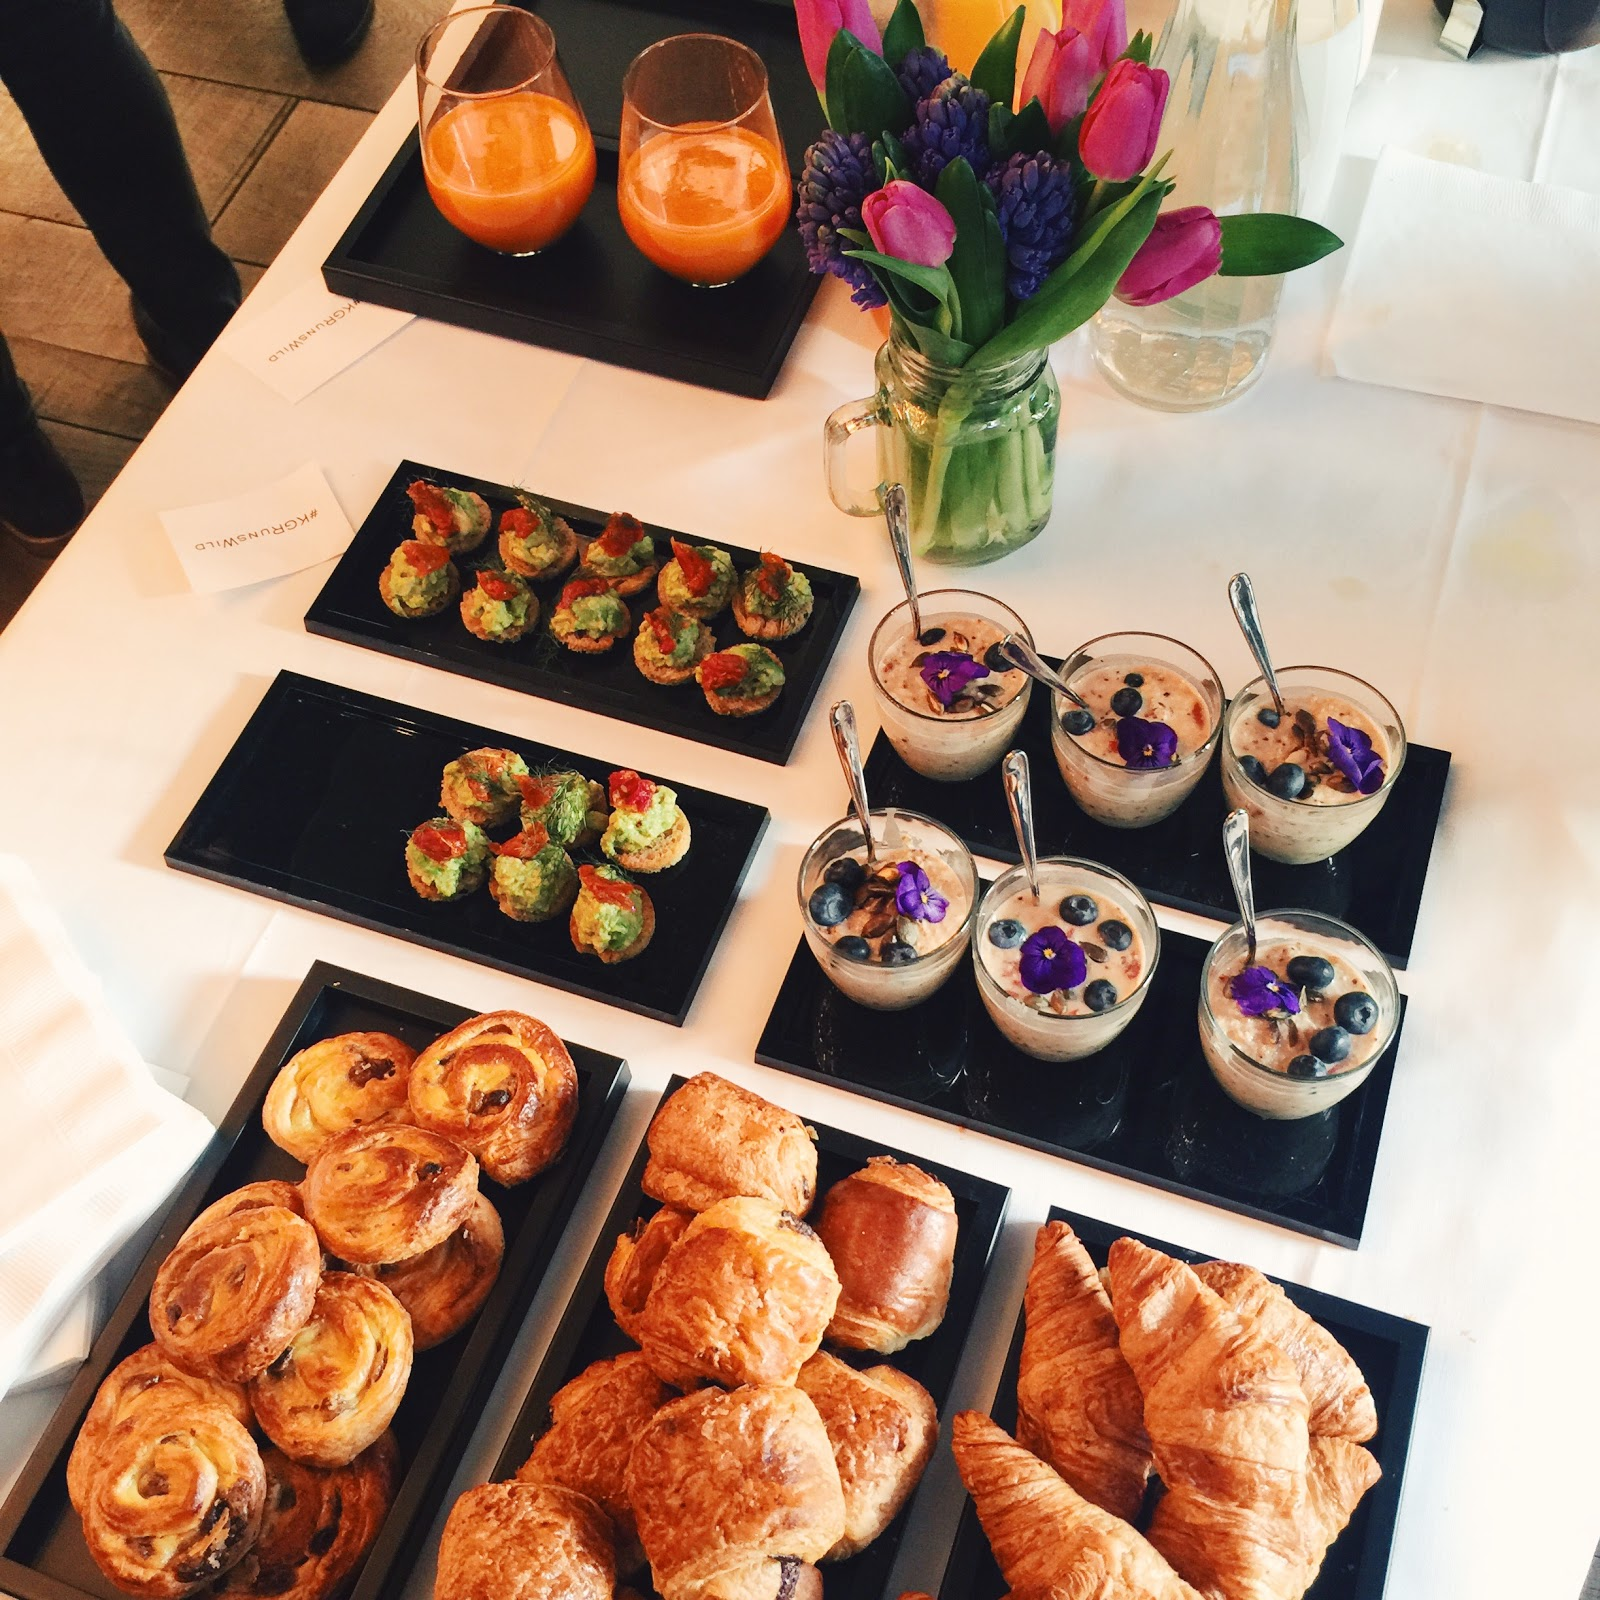 BREAKFAST AT KURT GEIGER EVENT